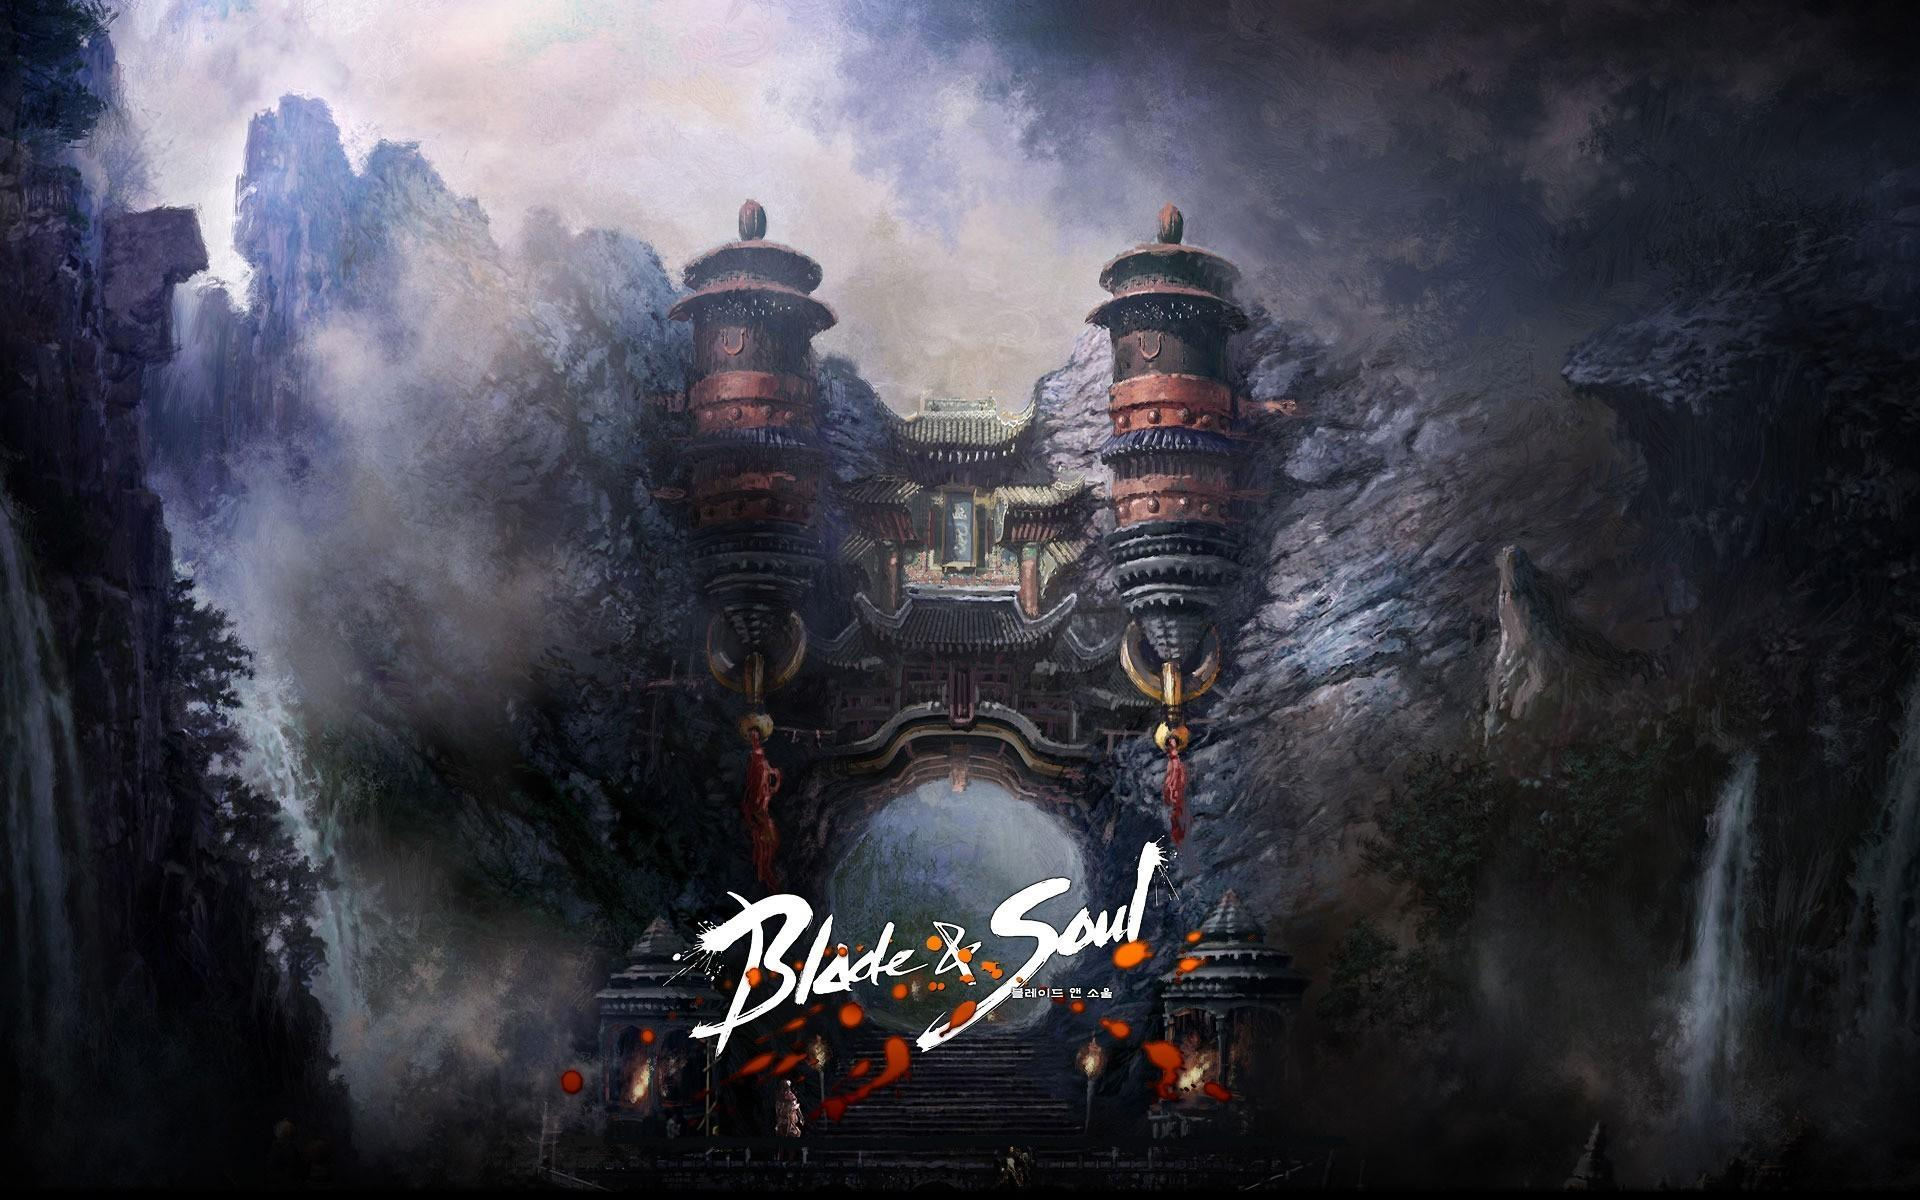 Blade and Soul Castle Widescreen Image wallpaper Best HD Wallpapers 1920x1200